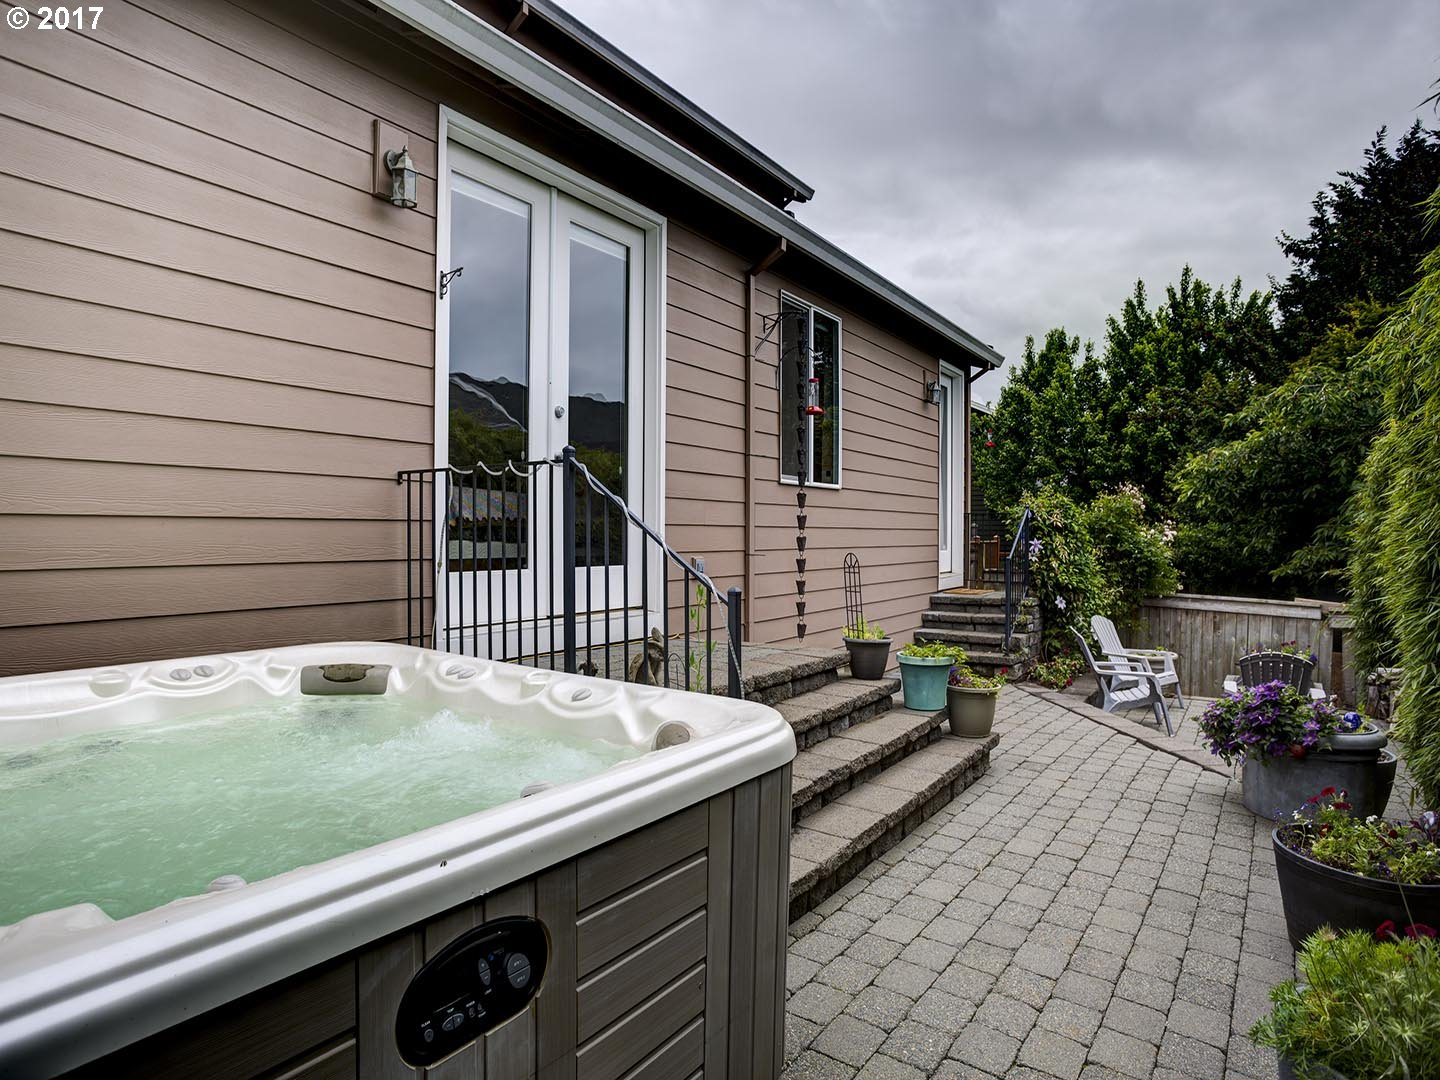 10923 SW NELSON ST Tualatin, OR 97062 - MLS #: 17147191